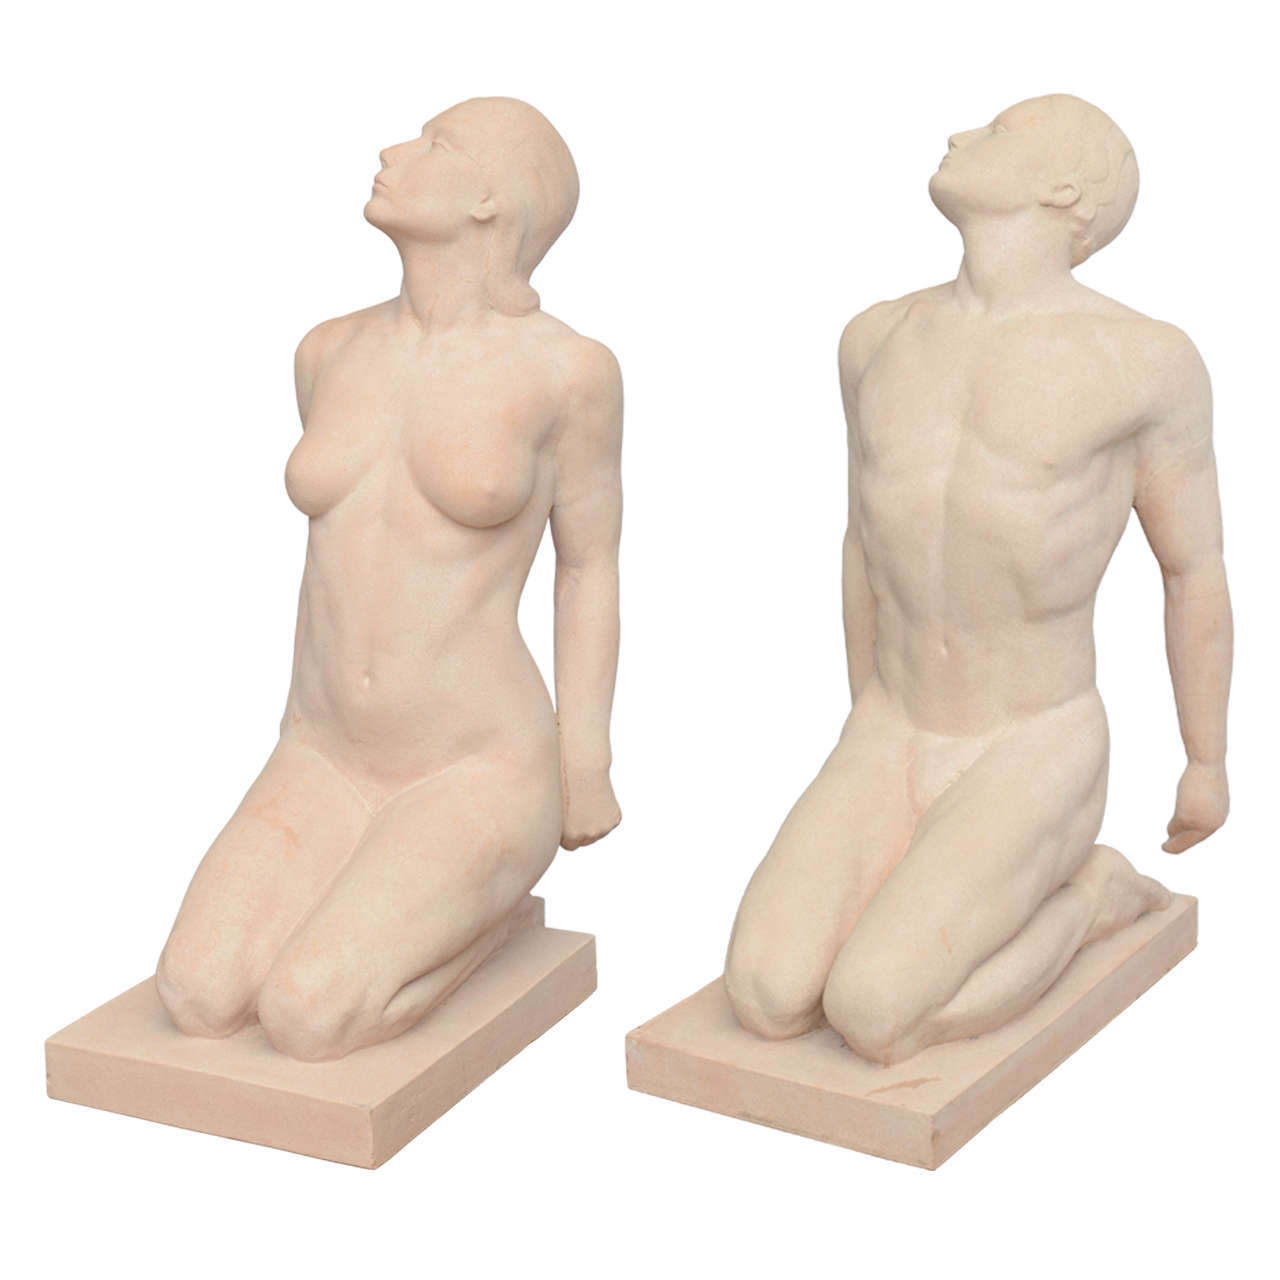 Matched Pair of Art Deco Terracotta Sculpture or Statues by Demetre Chiparus